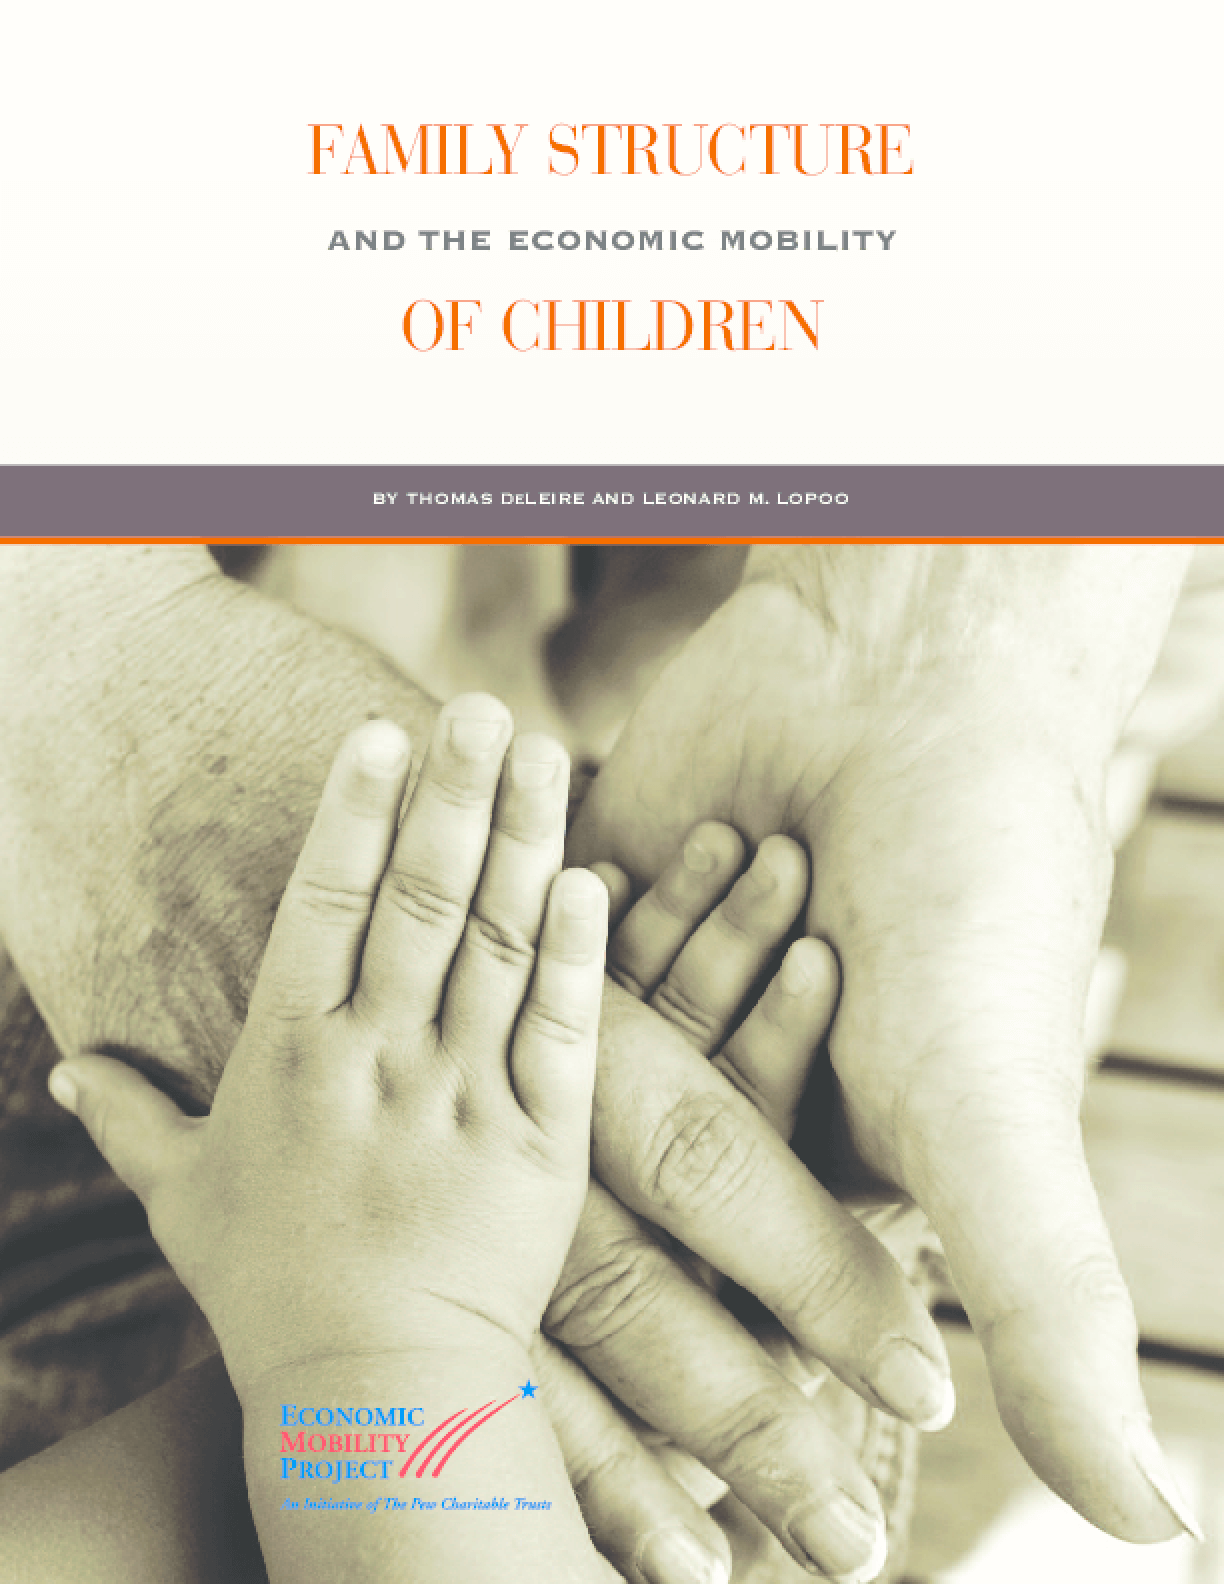 Family Structure and the Economic Mobility of Children